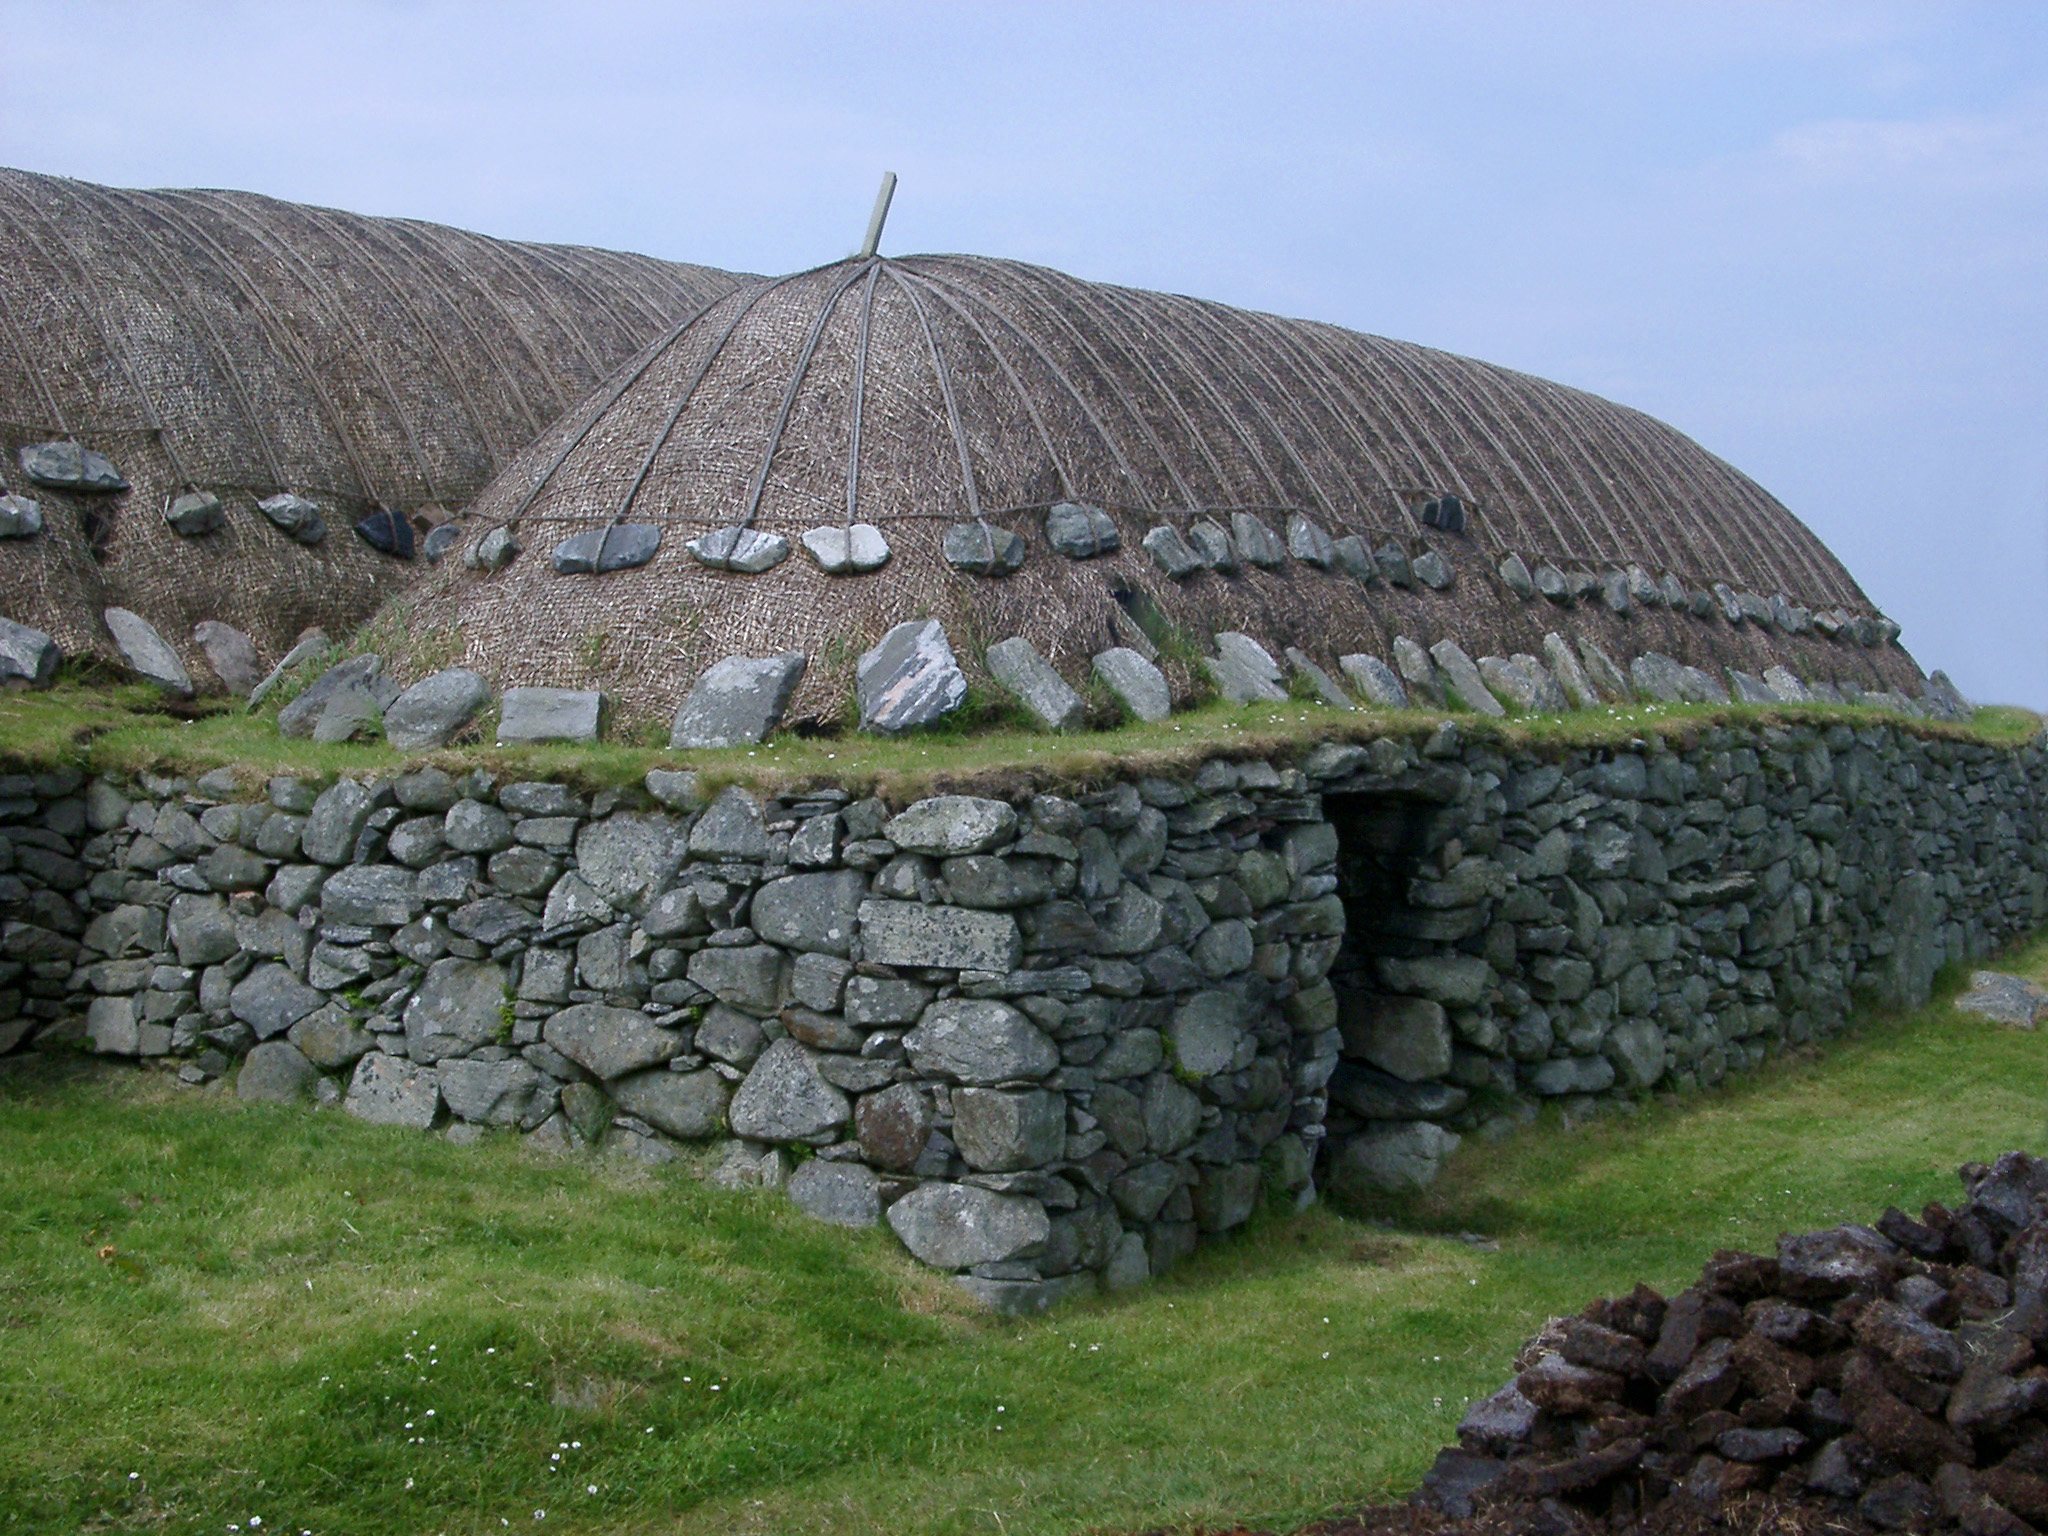 Free stock photo of traditional blackhouse on the hebrides for Black stone house